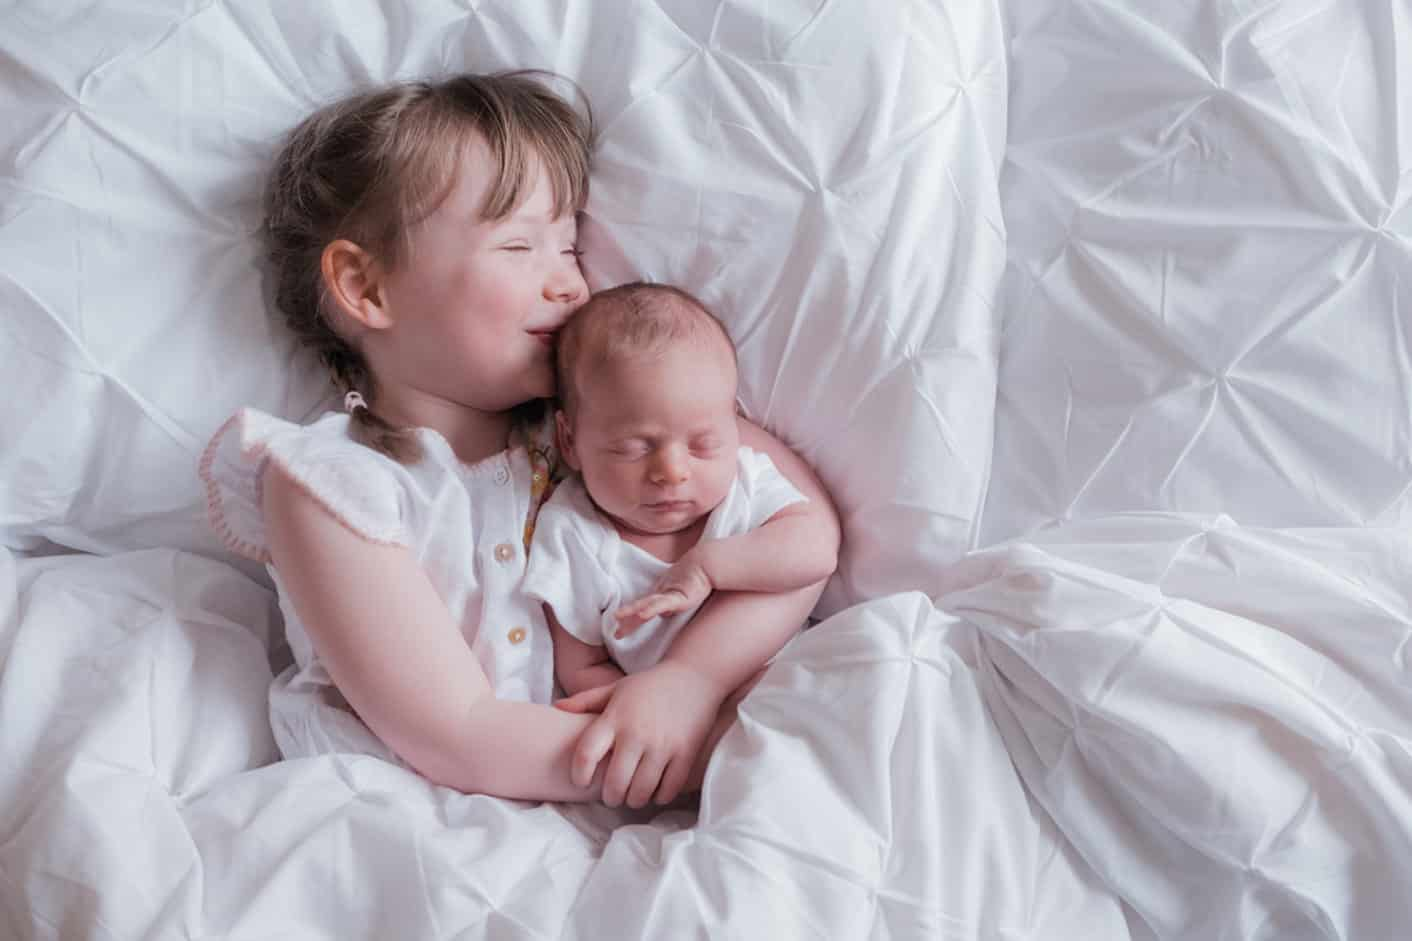 newborn photos with siblings at home